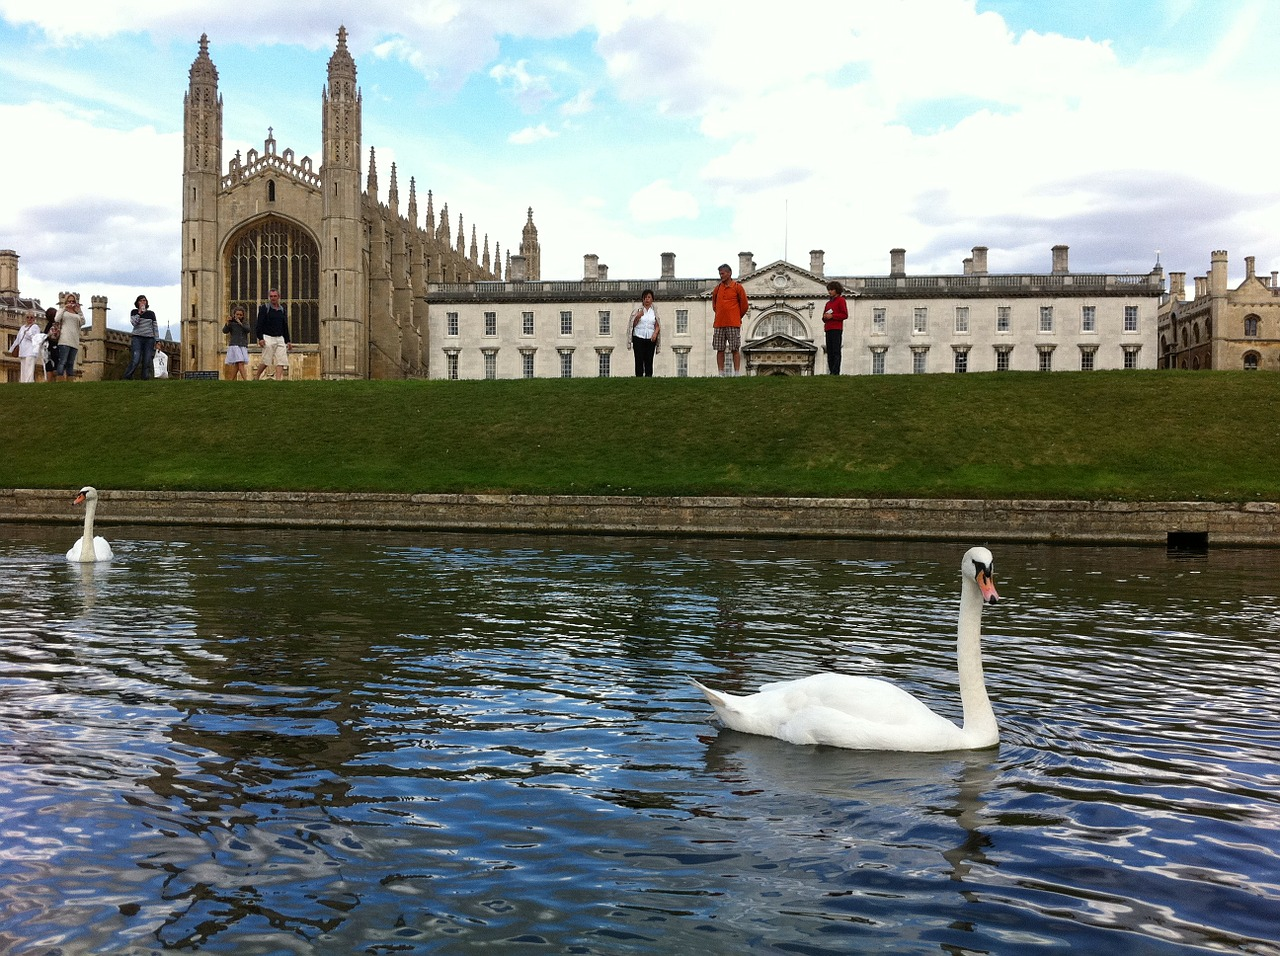 king's college cambridge uk free photo